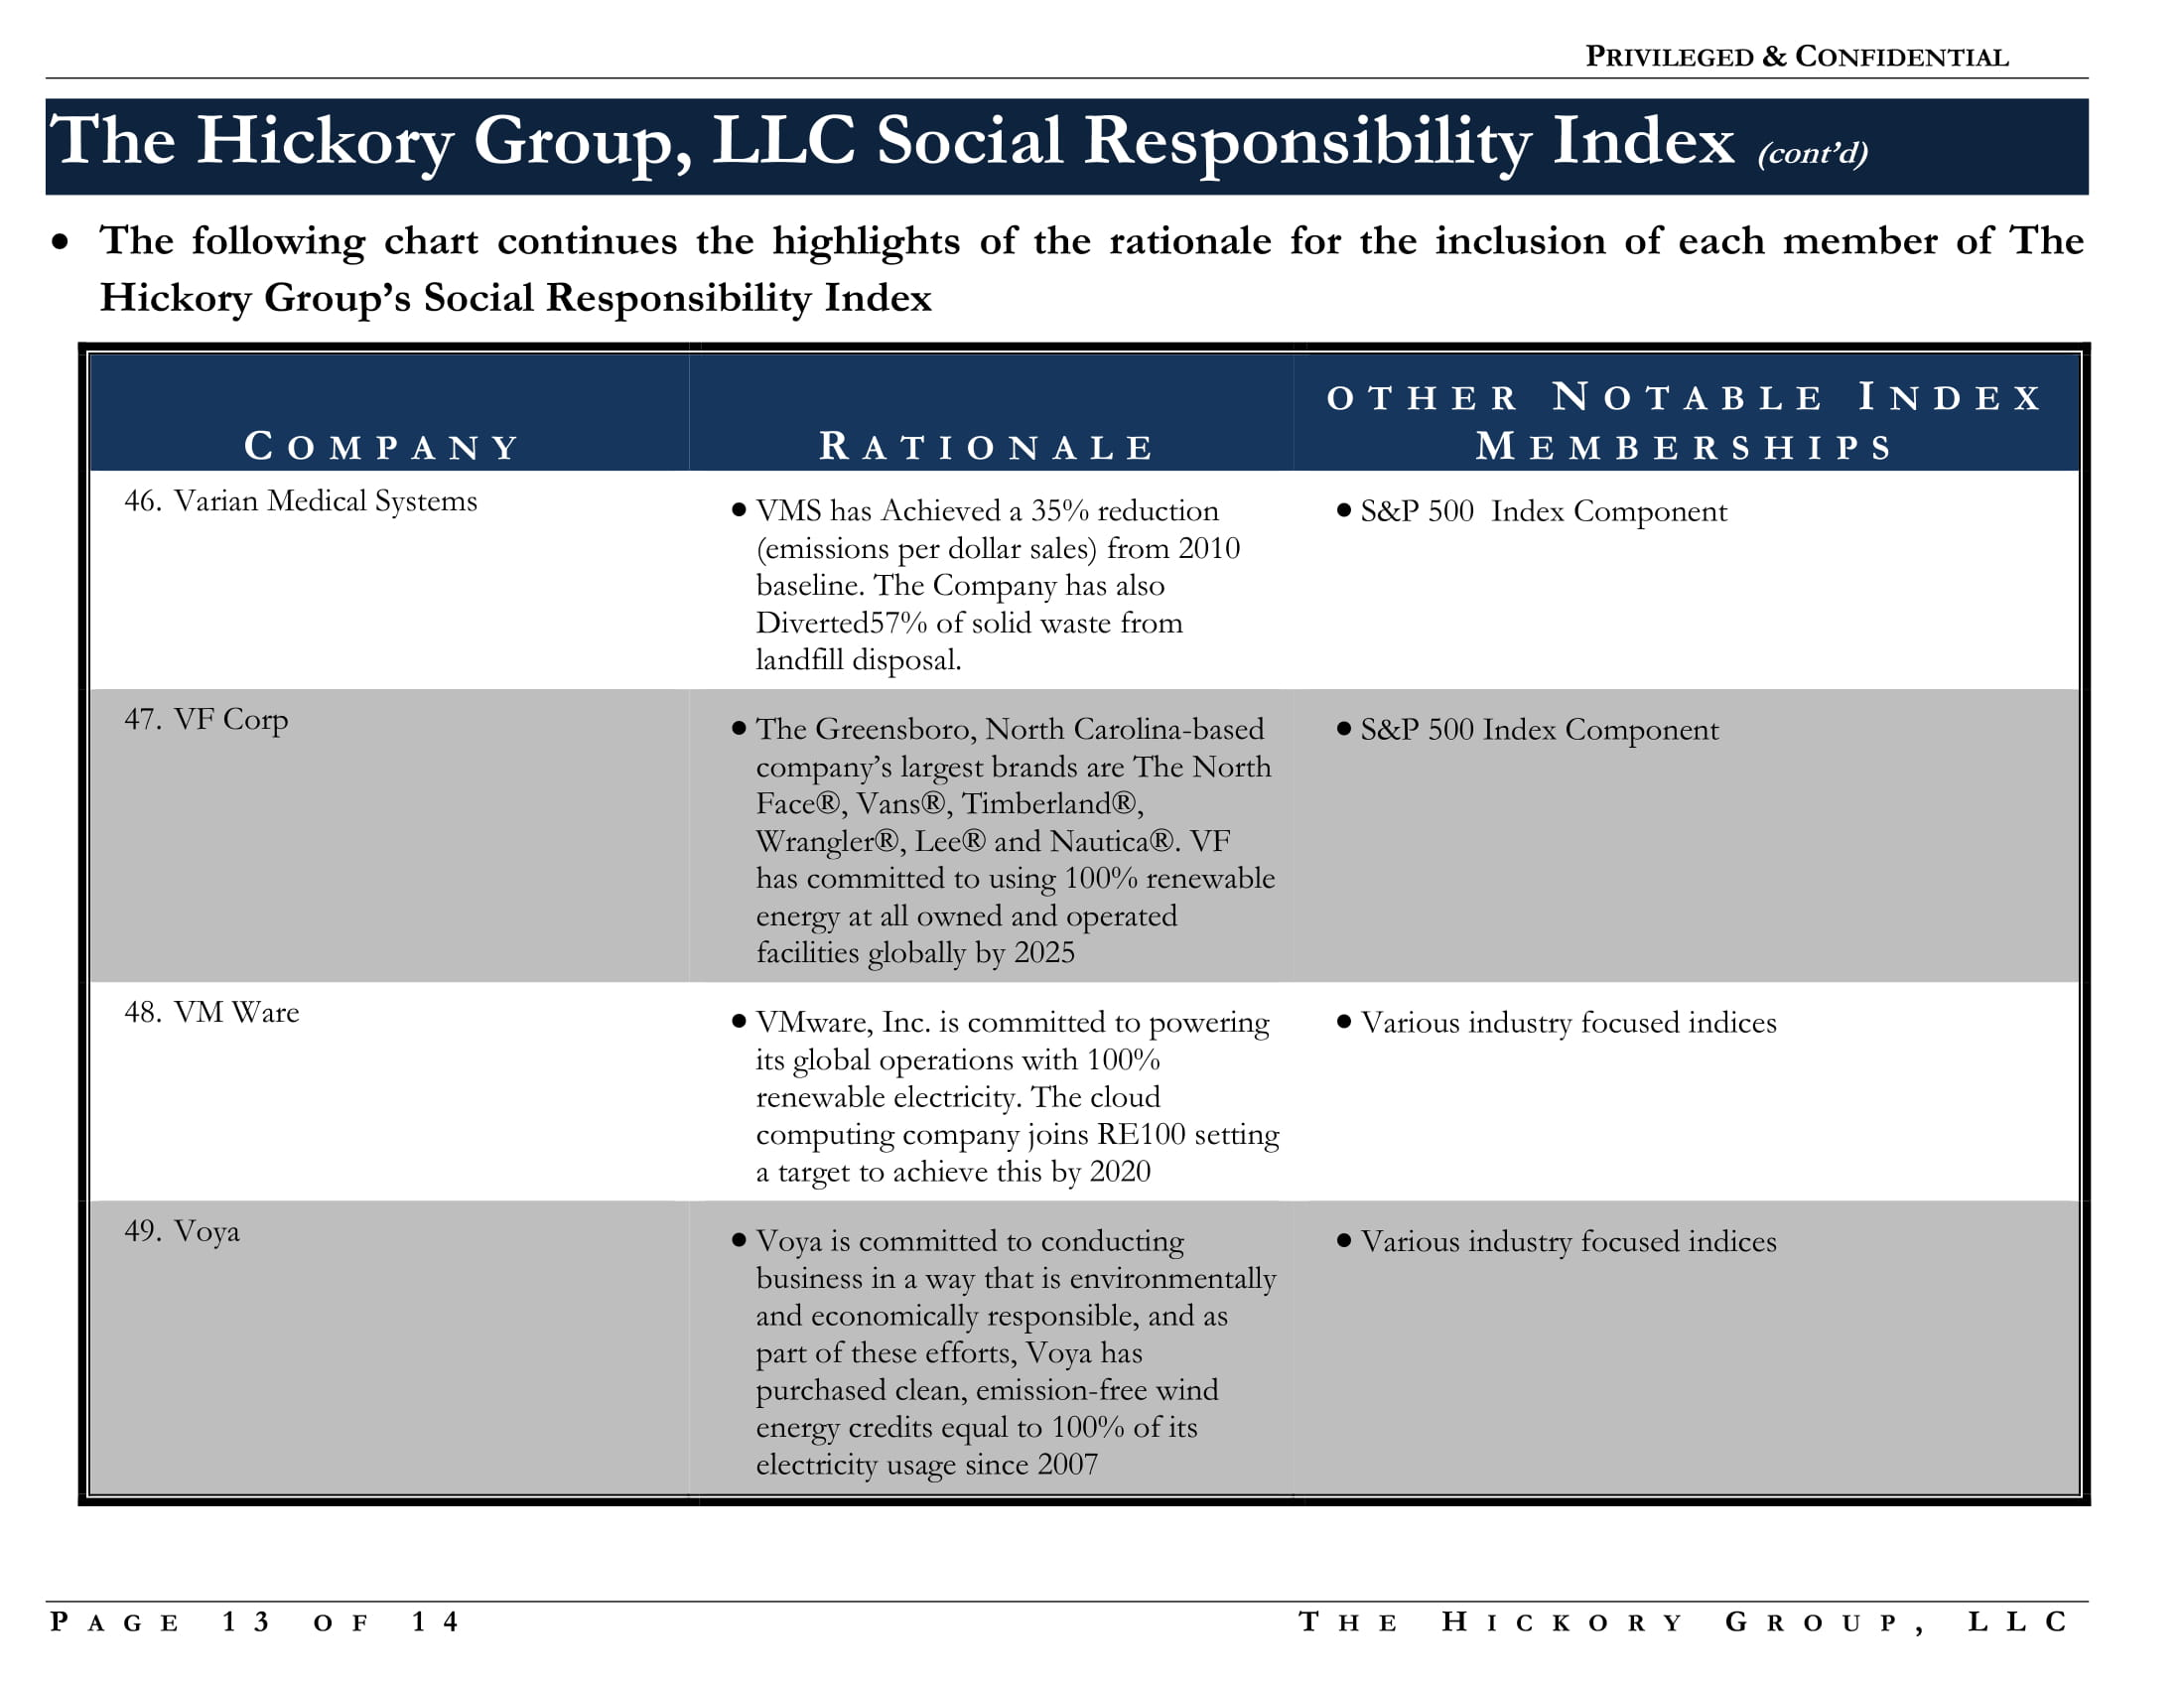 FINAL Social Responsibility Index  Notes and Rationale (7 October 2017) Privileged and Confidential-13.jpg